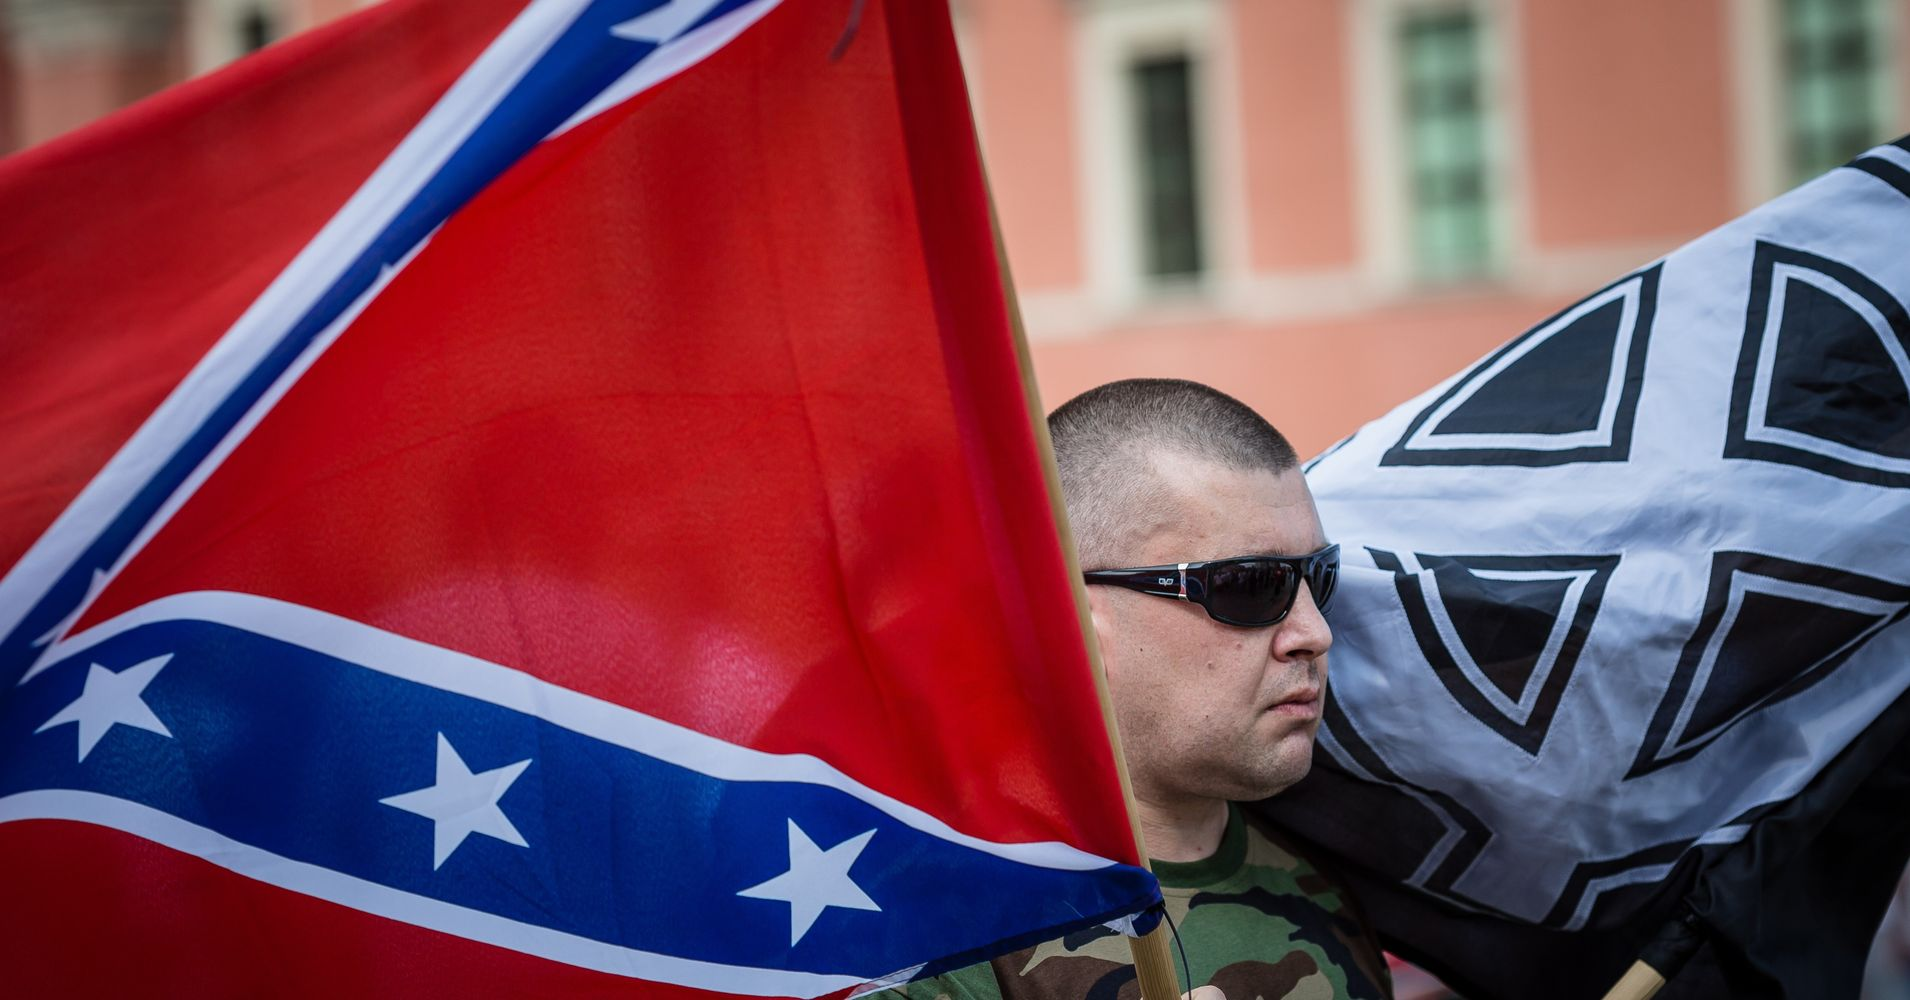 490d92422 This Is Why You're Seeing The Confederate Flag Across Europe | HuffPost